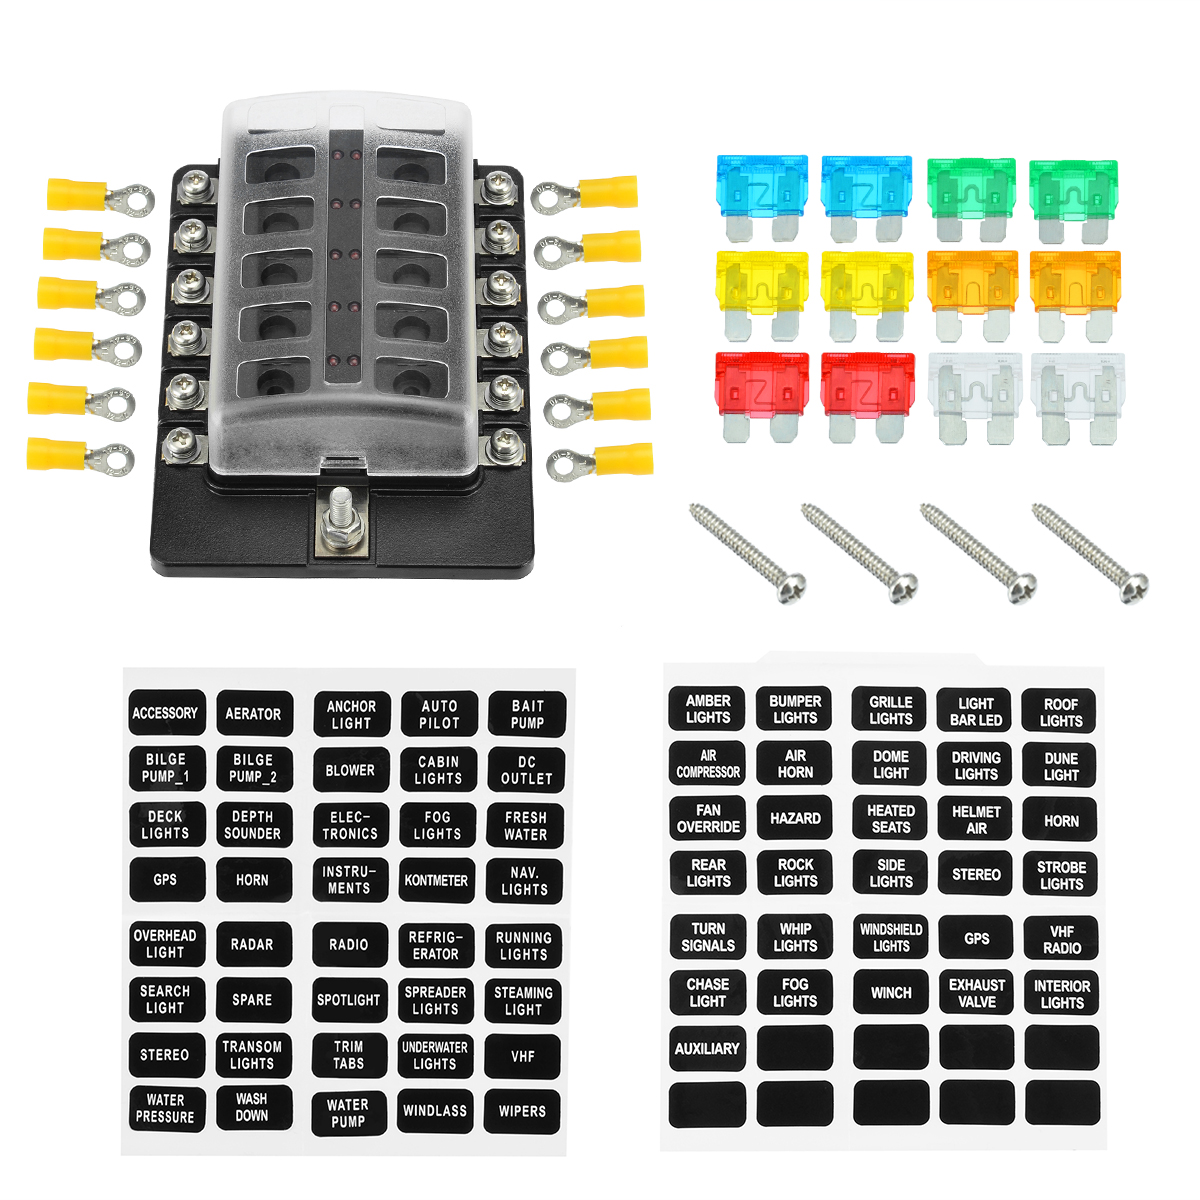 hight resolution of new 12 way car boat bus utv blade fuse box ato atc block holder cover 12v with red led indicator yellow terminals screws aliexpress com imall com